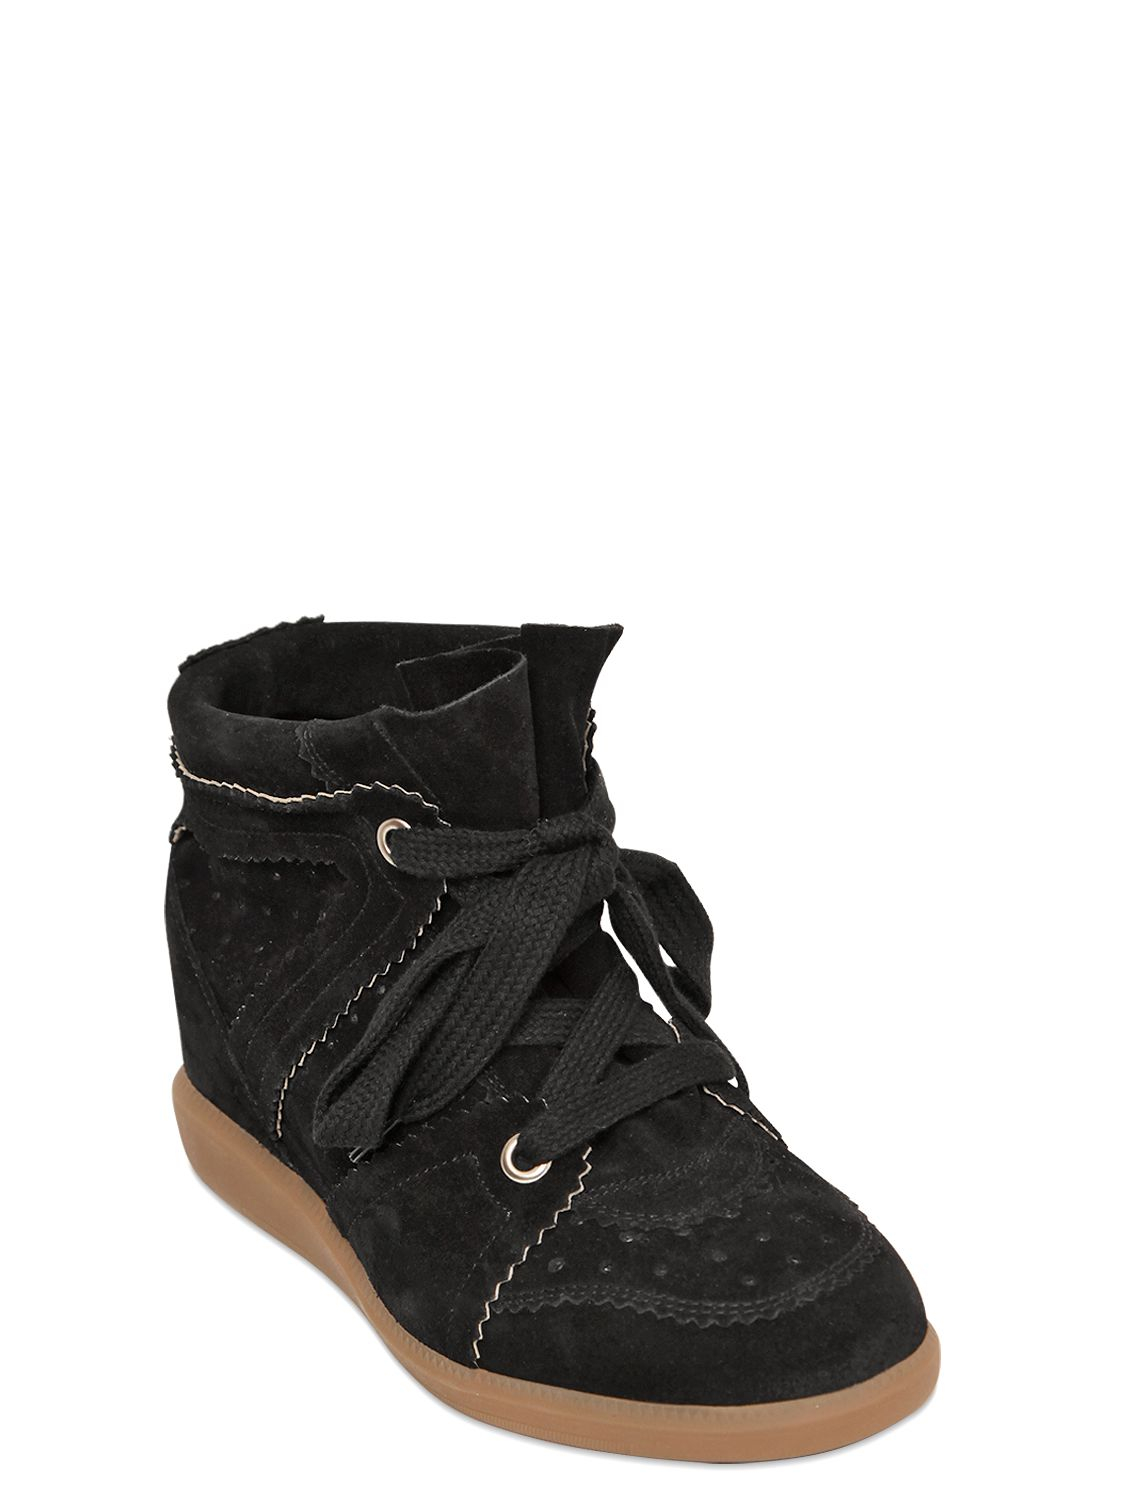 876c9fc05de6 Gallery. Previously sold at  LUISA VIA ROMA · Women s Wedge Sneakers  Women s Isabel Marant Bobby ...